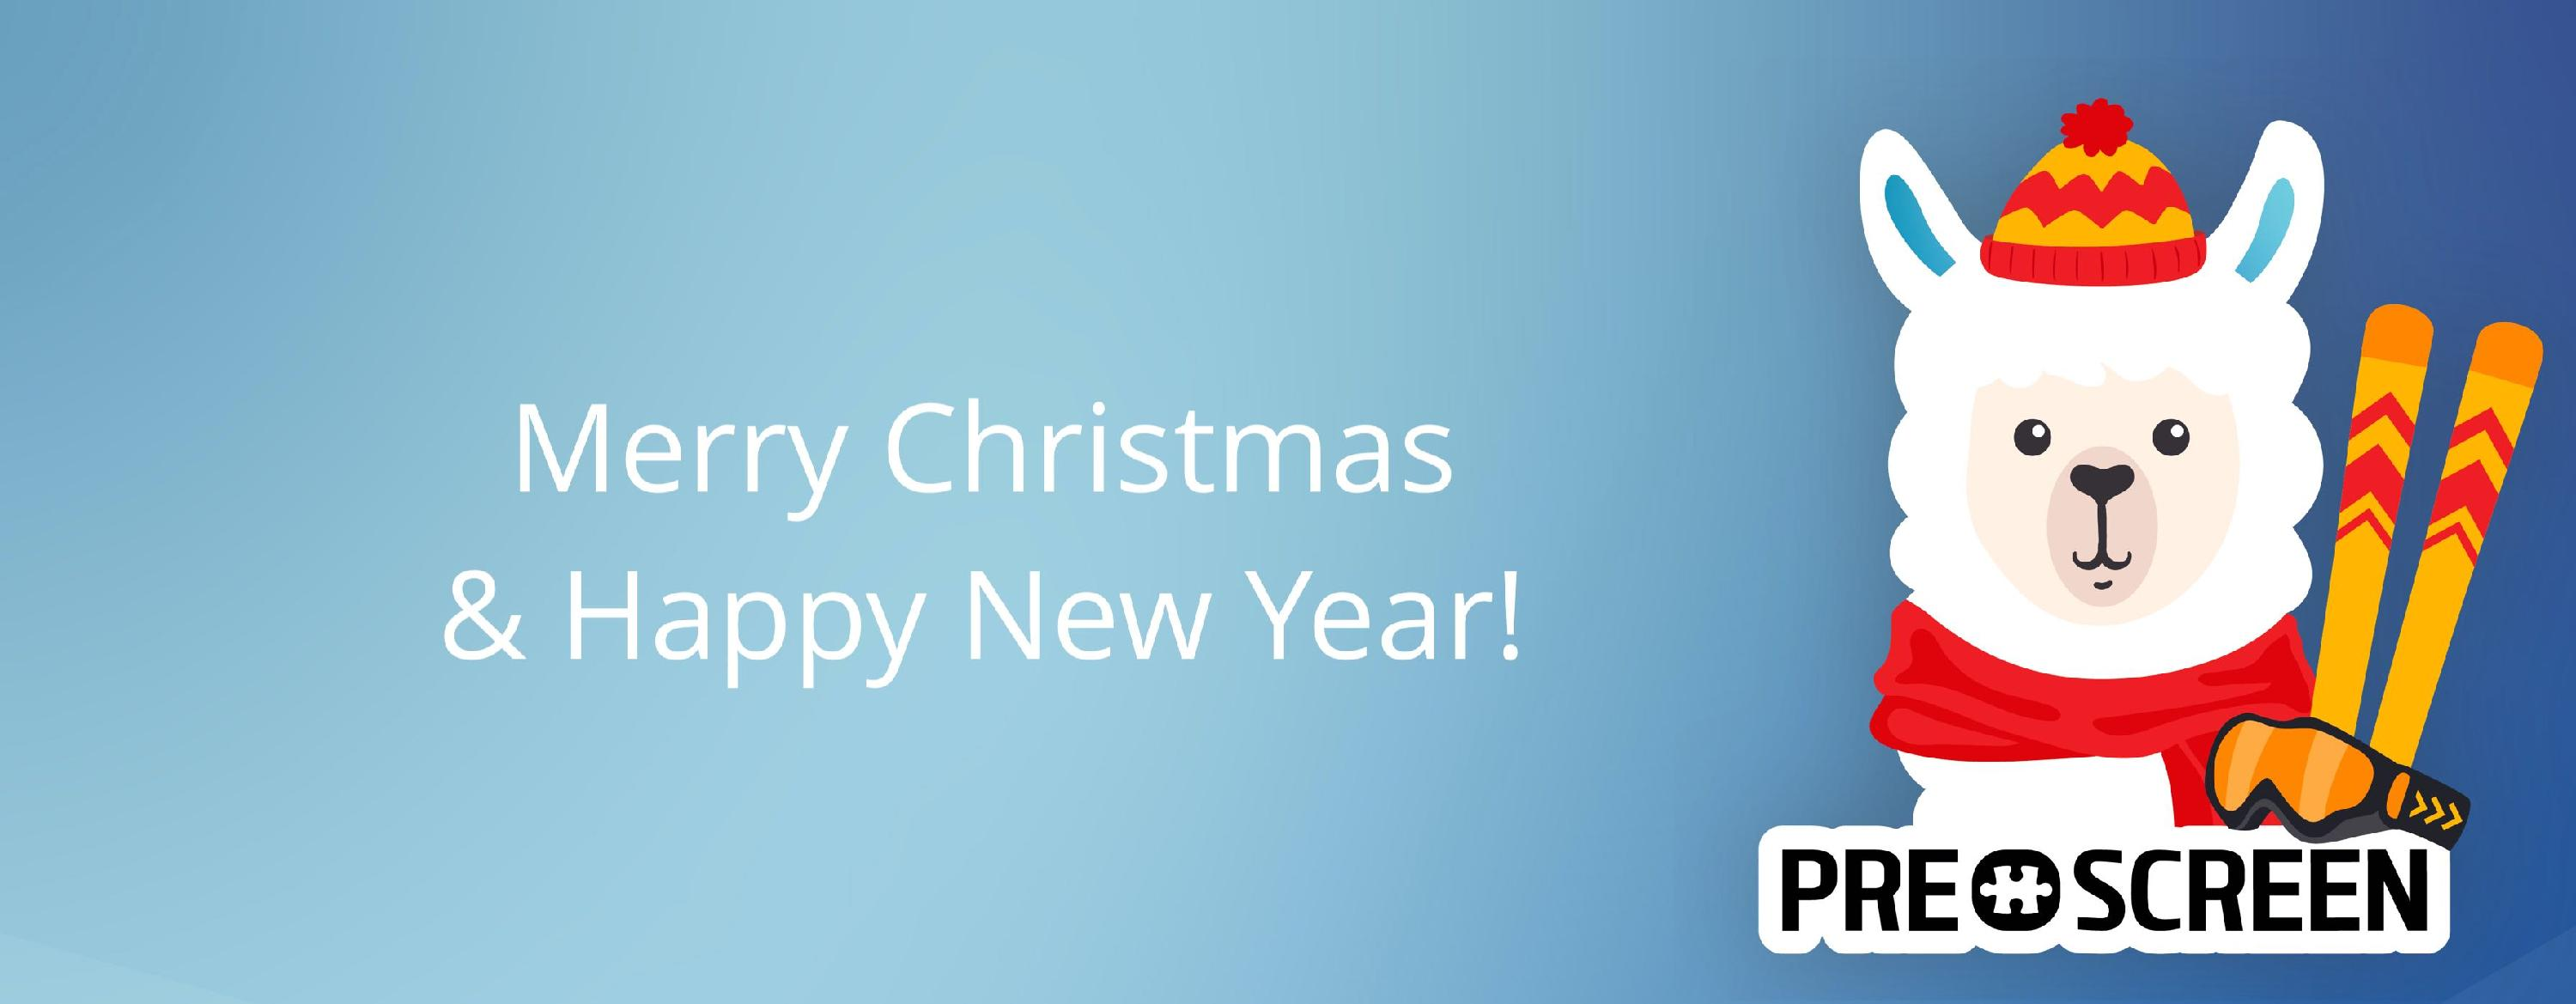 Prescreen wishes you Merry Christmas and Happy New Year!